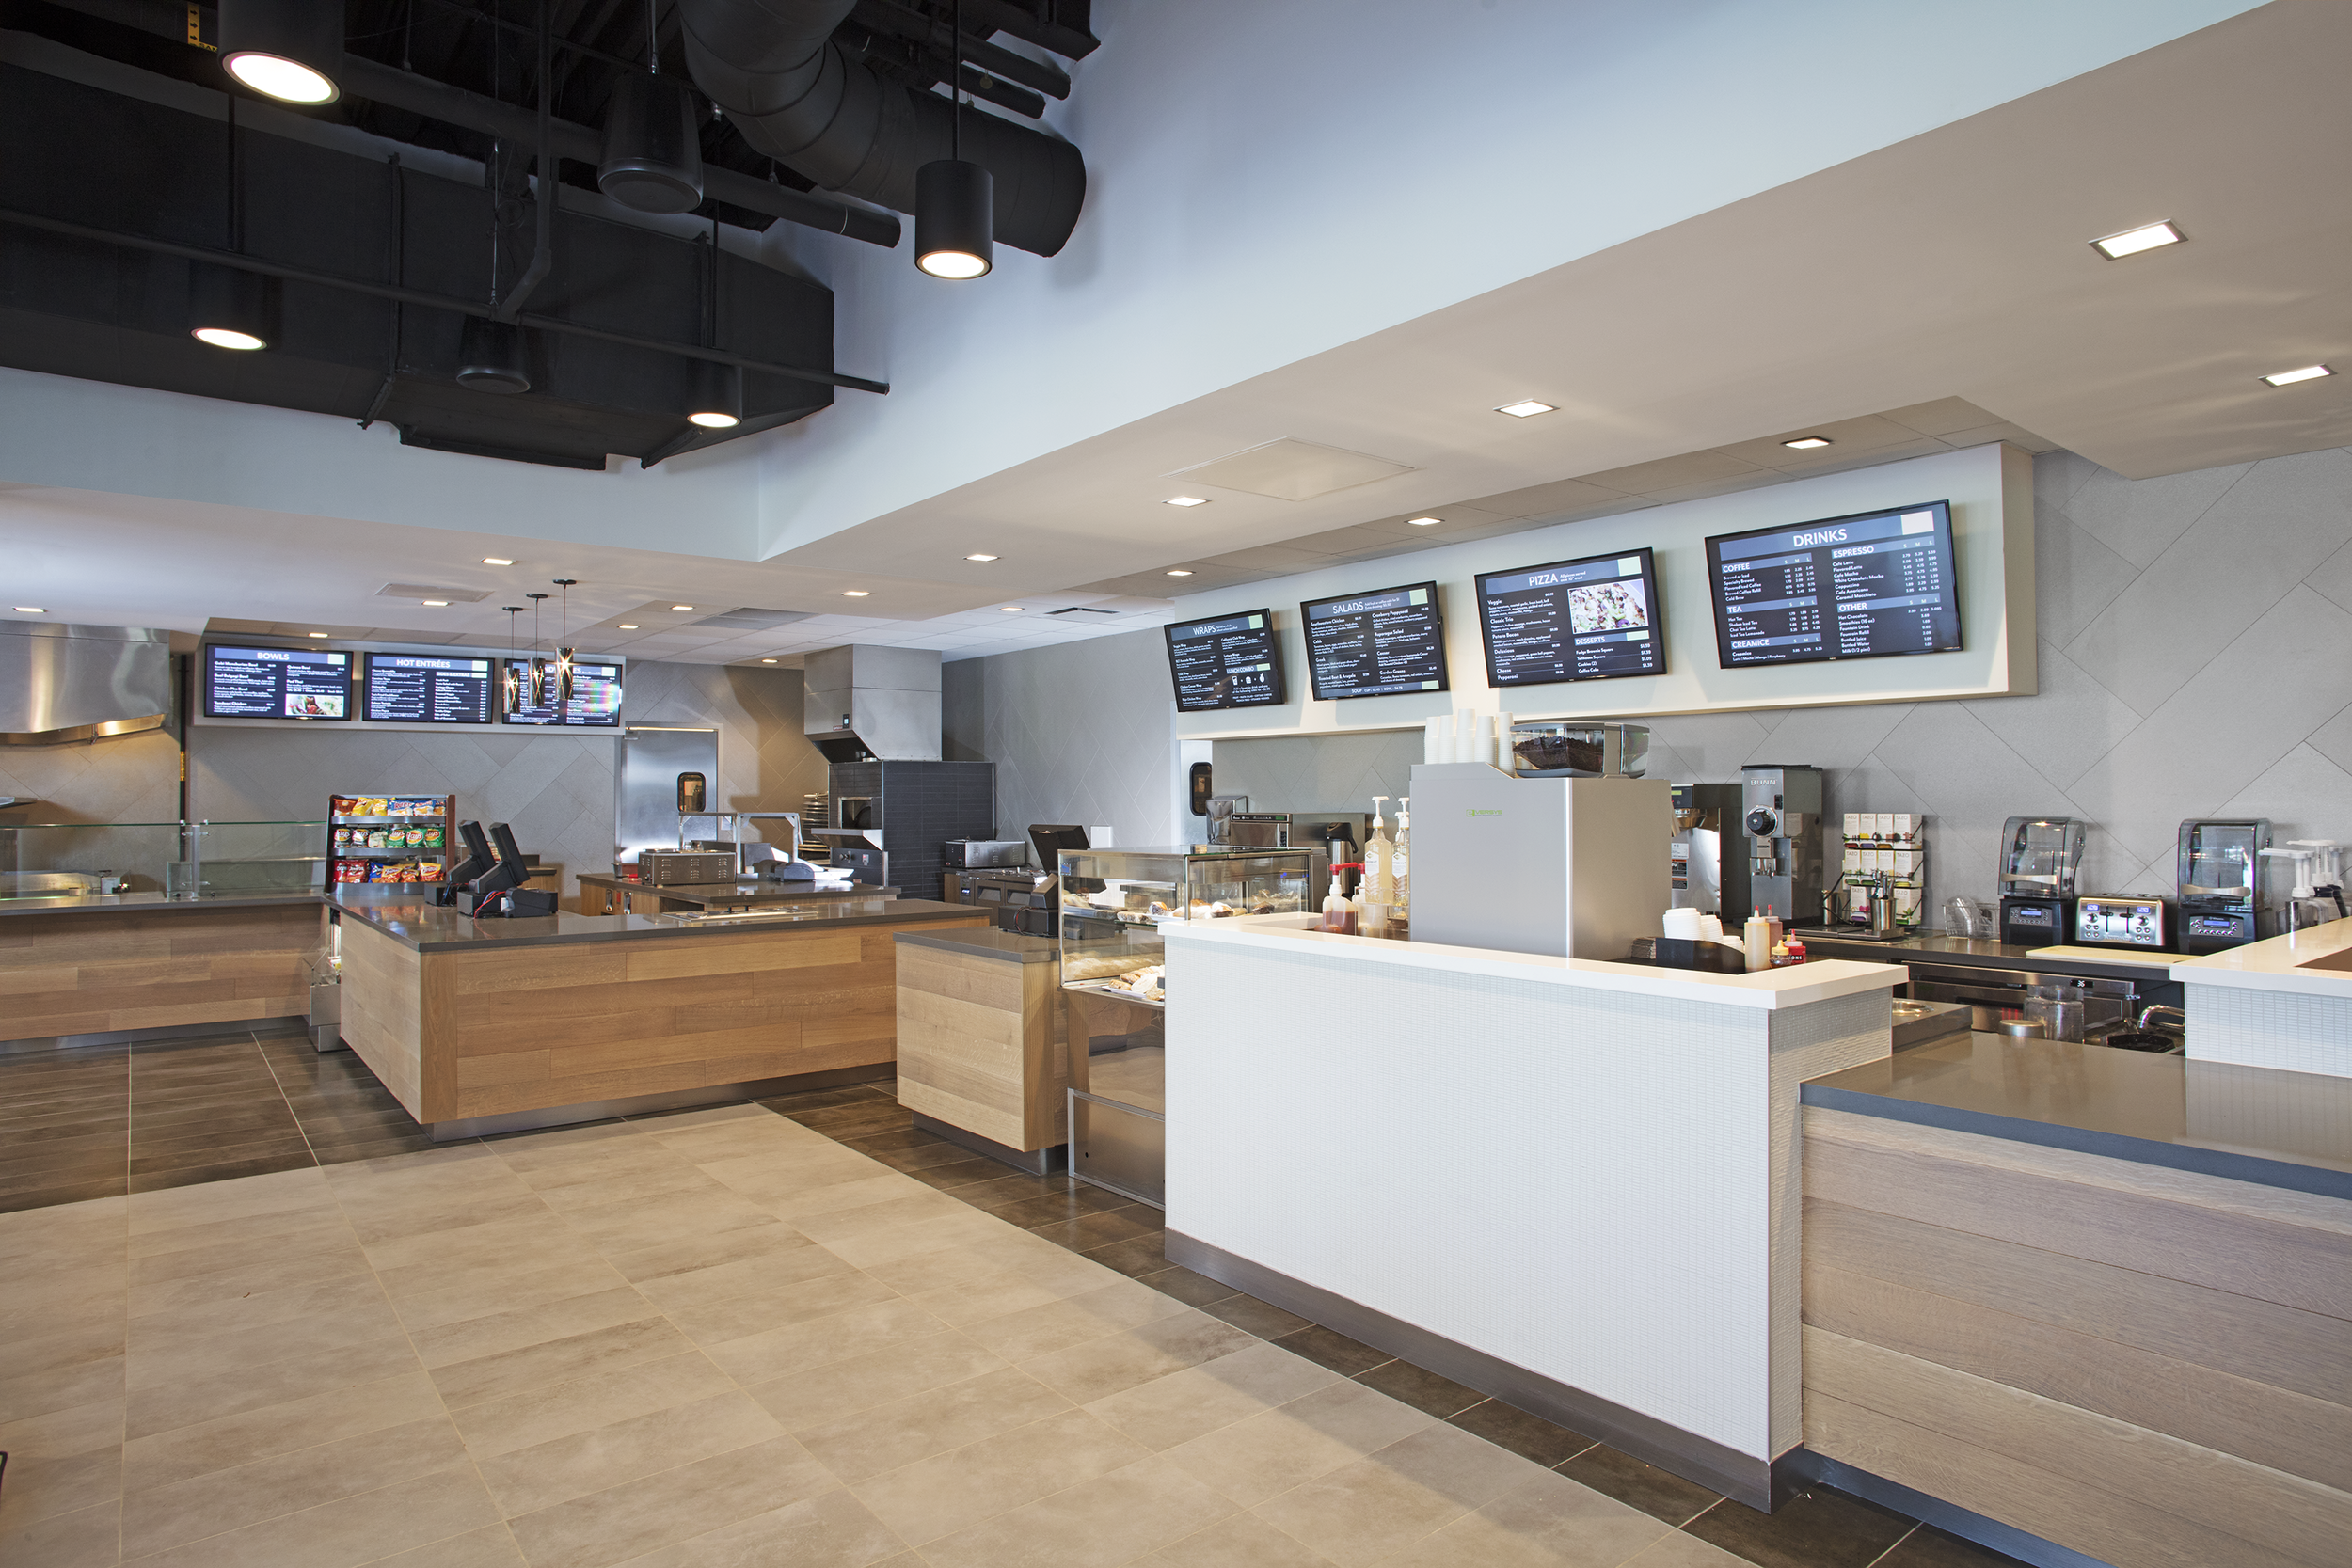 Enjoy Breakfast, Lunch, Coffee Bar and Afternoon Snacks